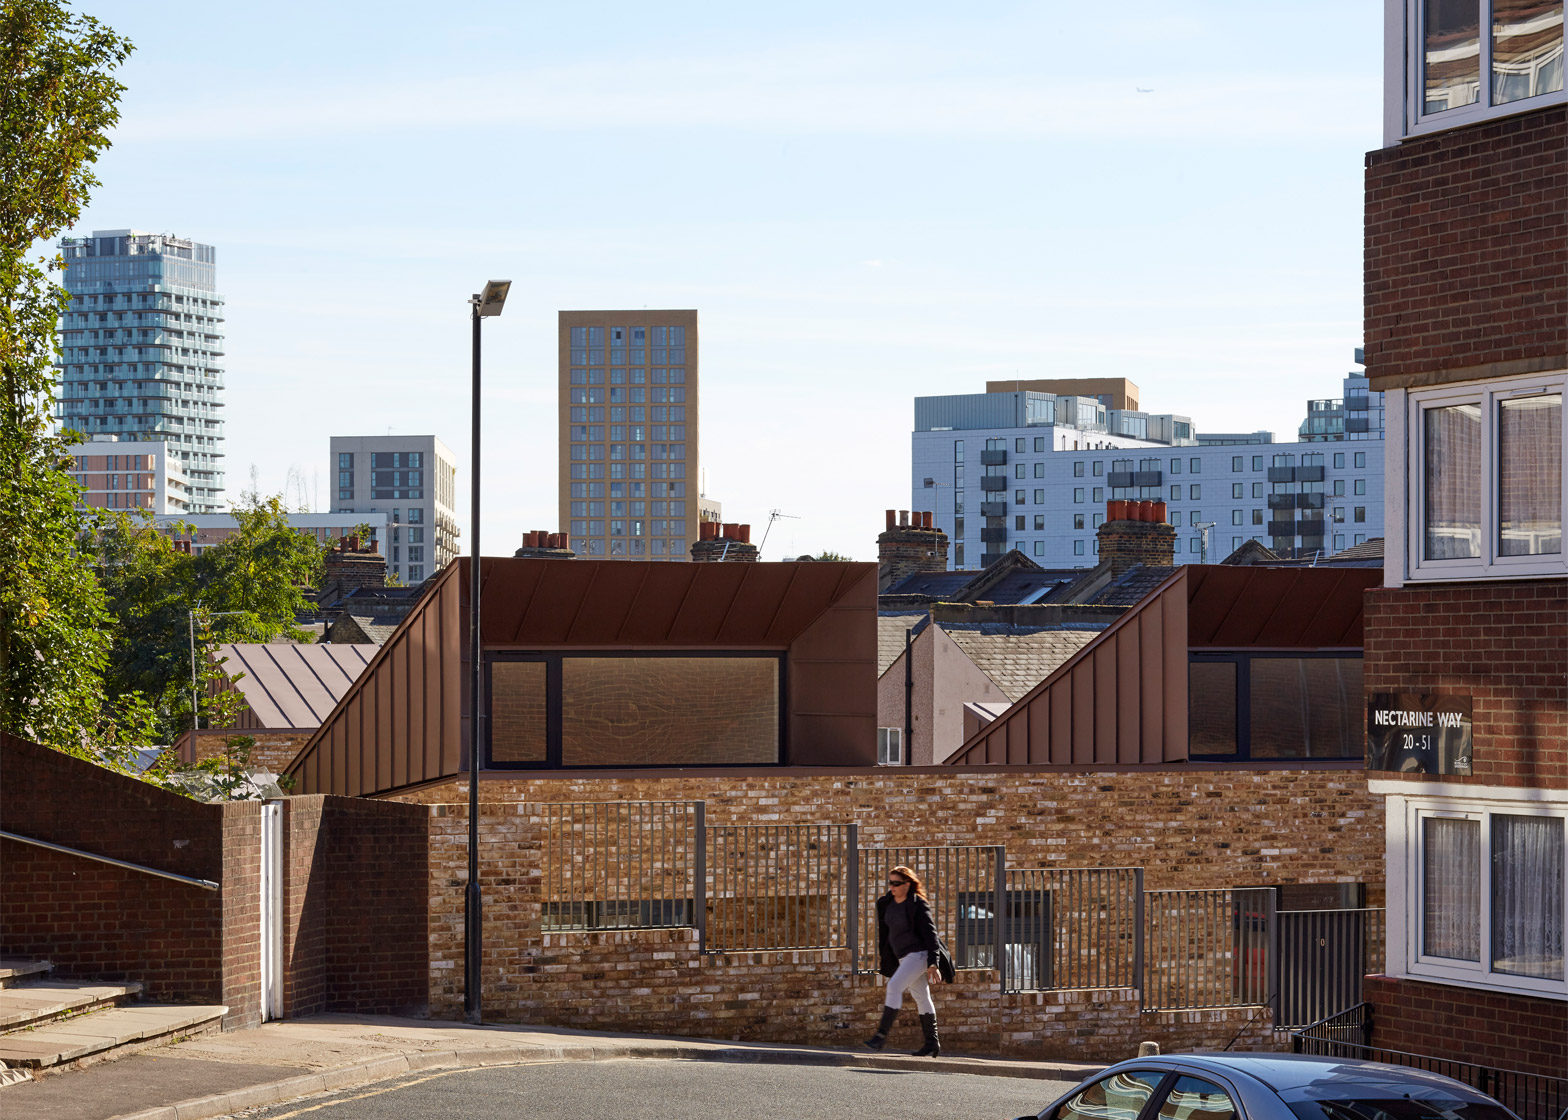 Coldbath Street housing by Bell Phillips Architects